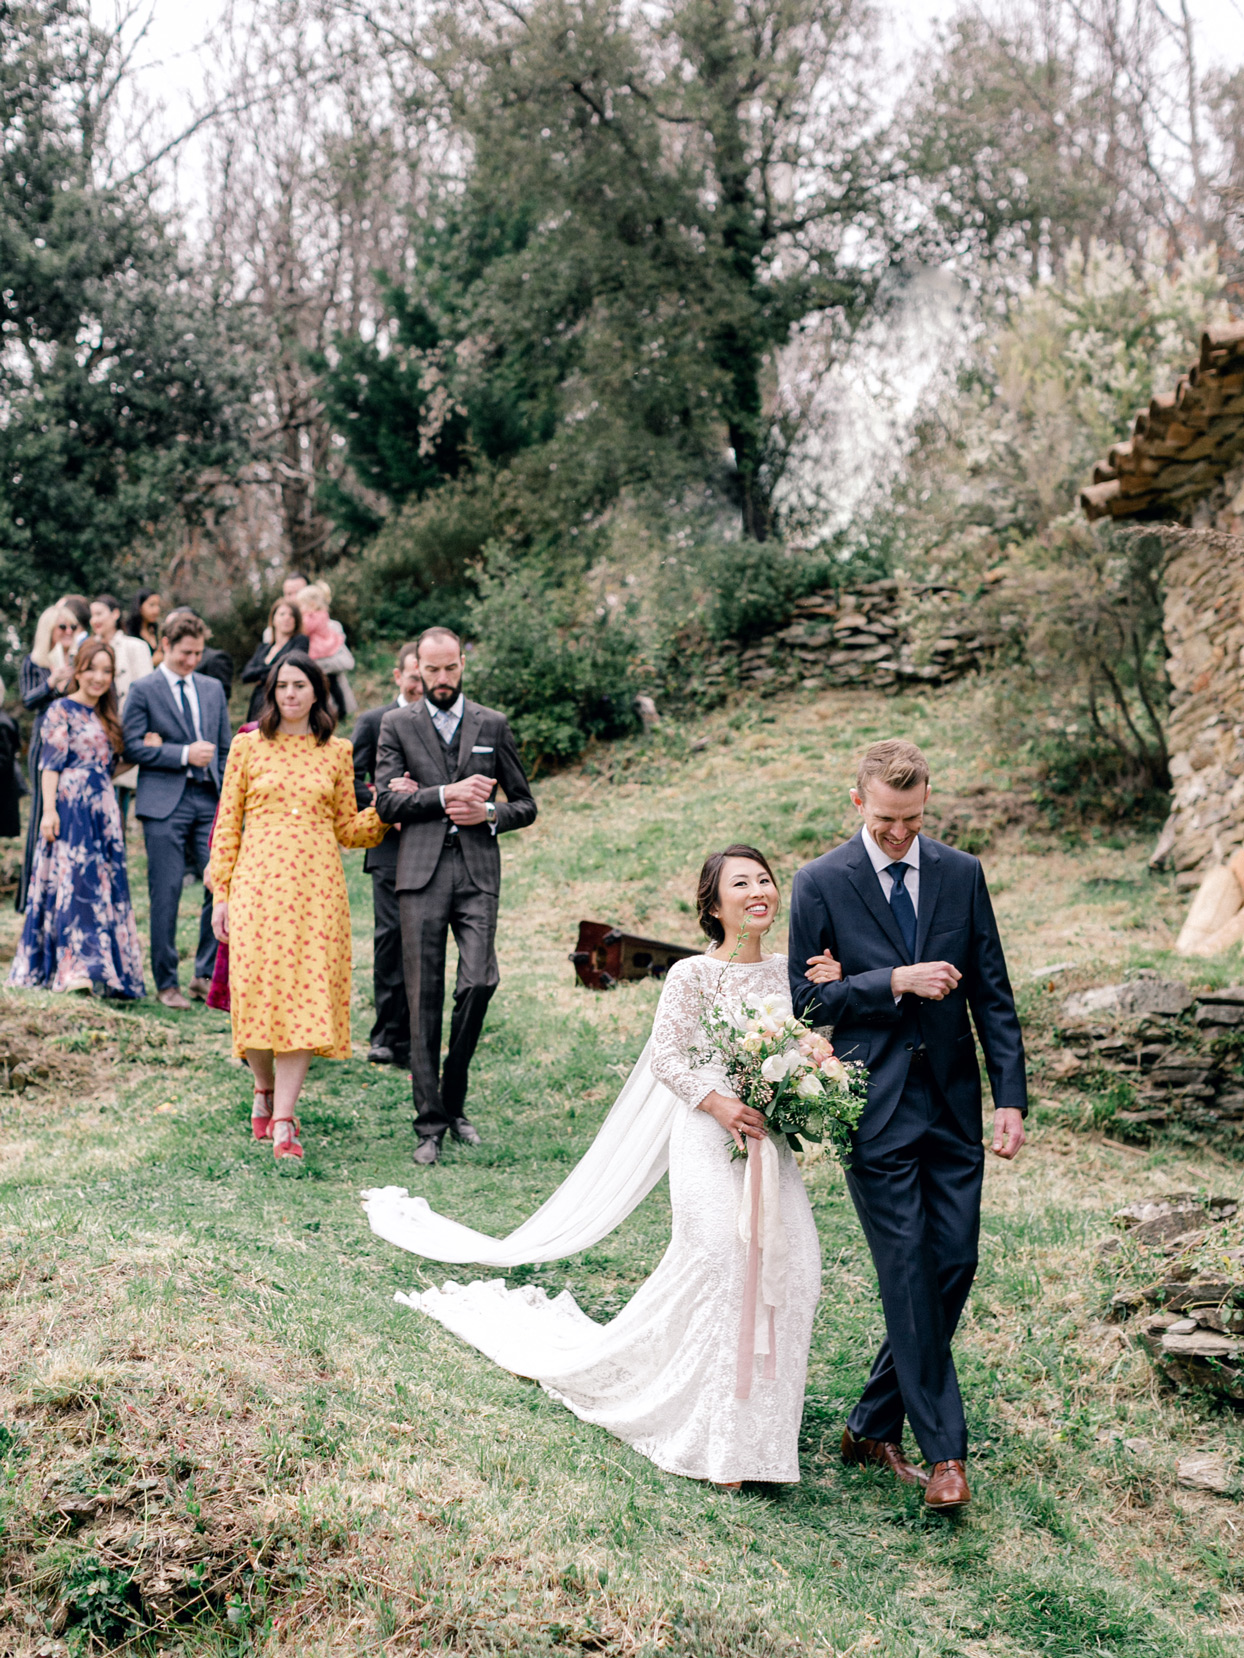 bride and groom leading wedding guests down hillside